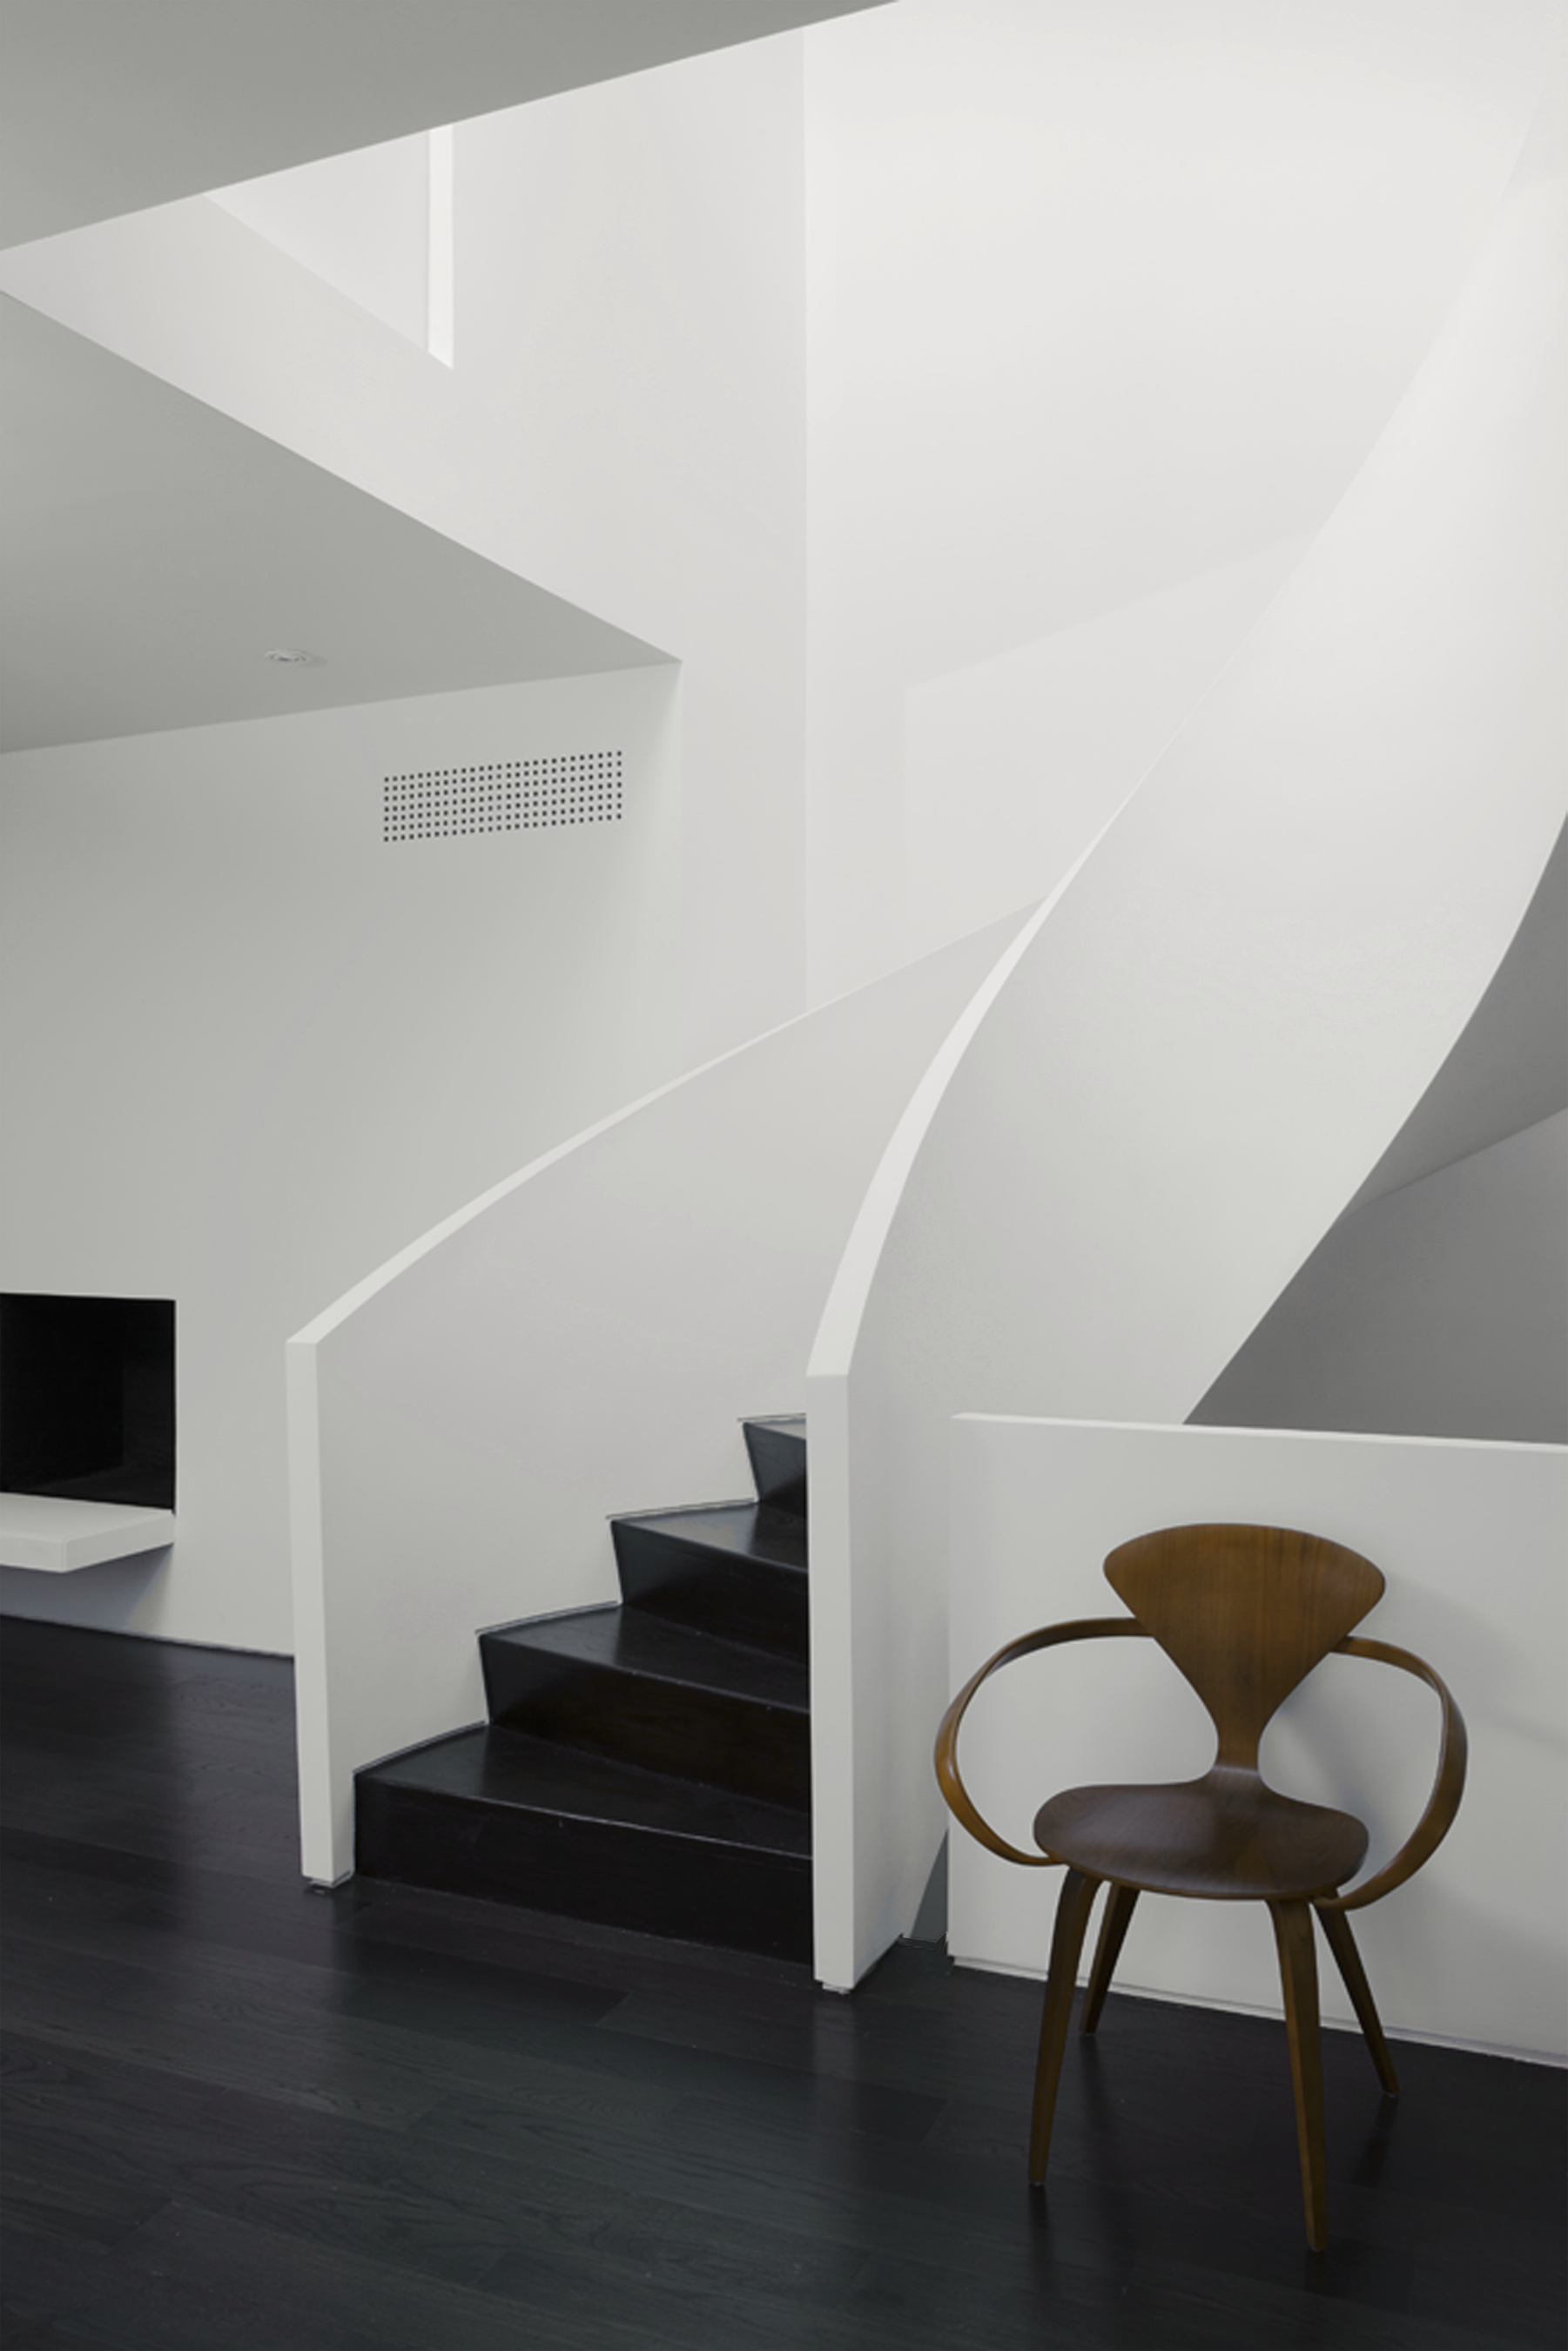 Copy of Russell Hill Road - Stair Curve White Landing Black Stain